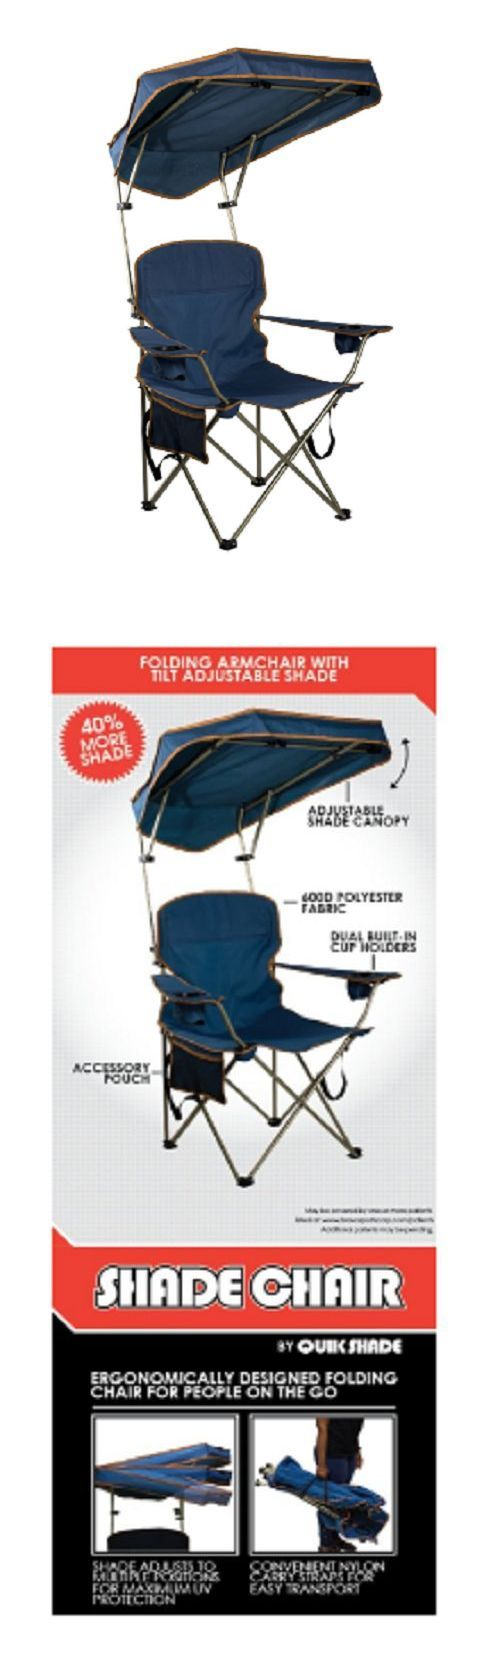 Camping Furniture 16038: Folding Chairs With Canopy Lawn Chair Beach Camping Outdoor Adjustable Navy -> BUY IT NOW ONLY: $39.78 on eBay!